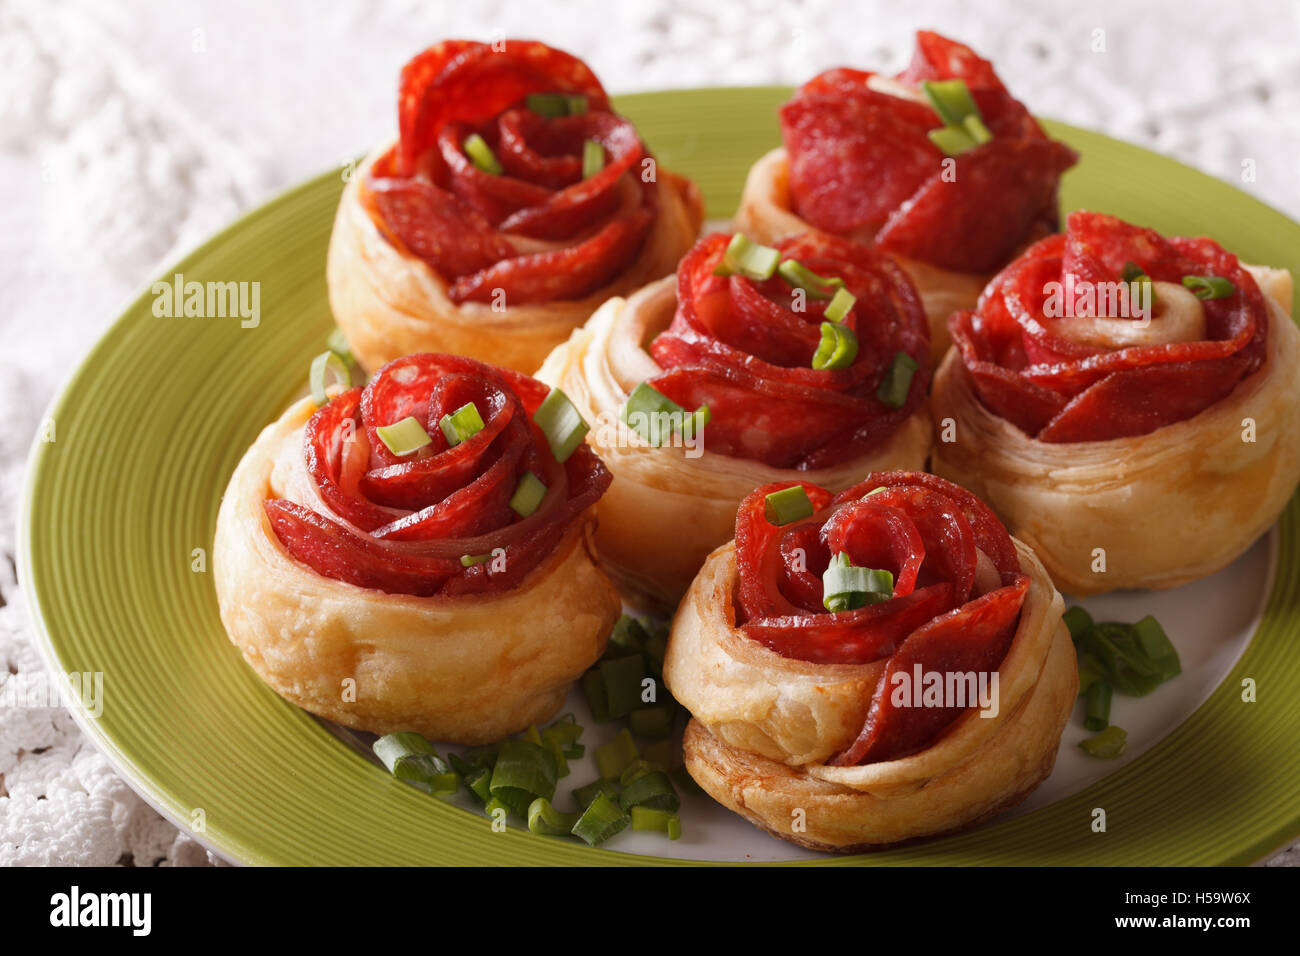 baked roll with salami and cheese in the form of roses close-up on a plate. horizontal - Stock Image